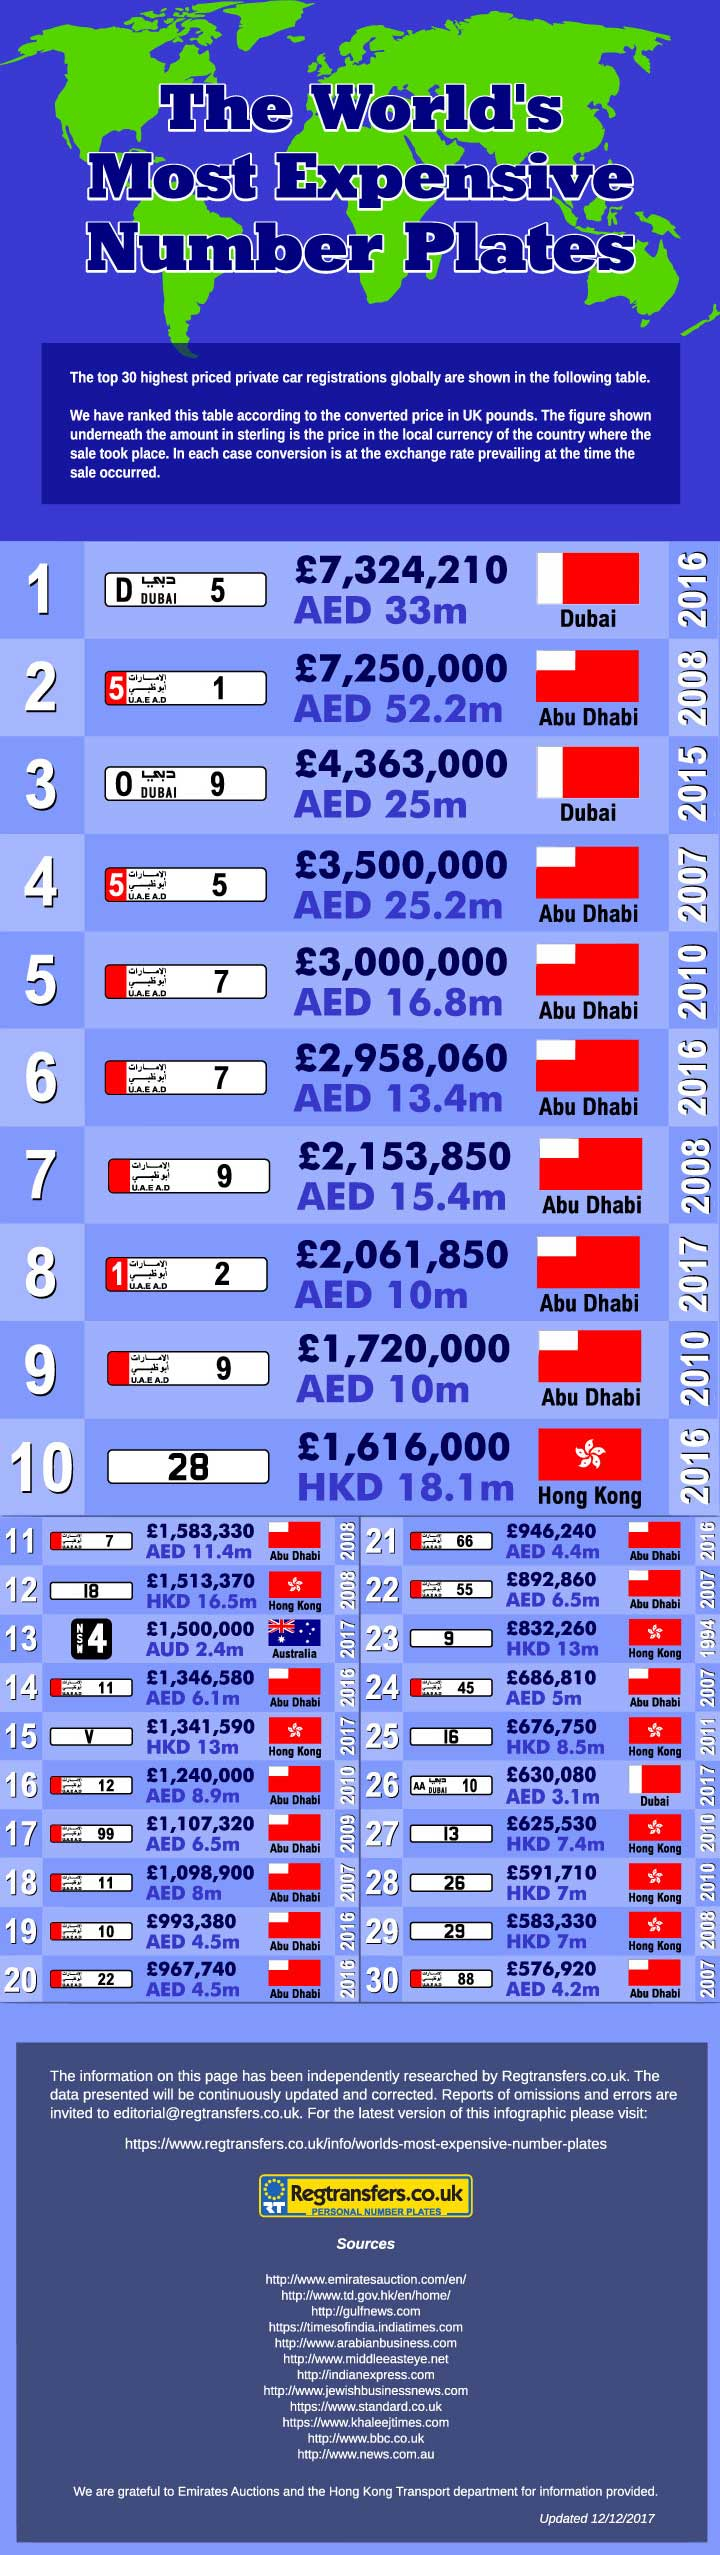 Most Expensive Number Plates World Infographic